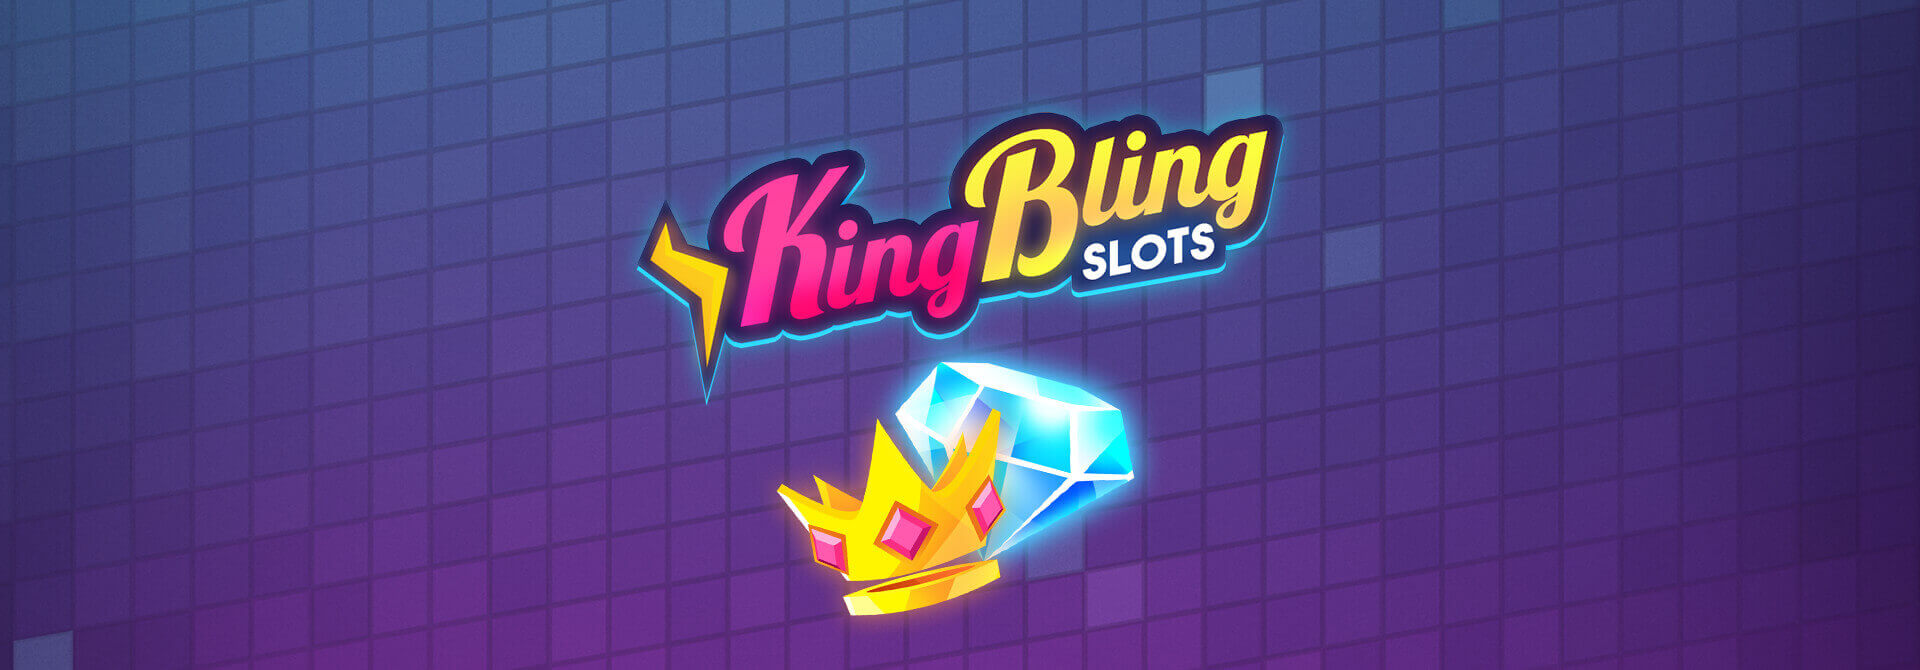 NEW GAME: Get your groove on with King Bling Slots